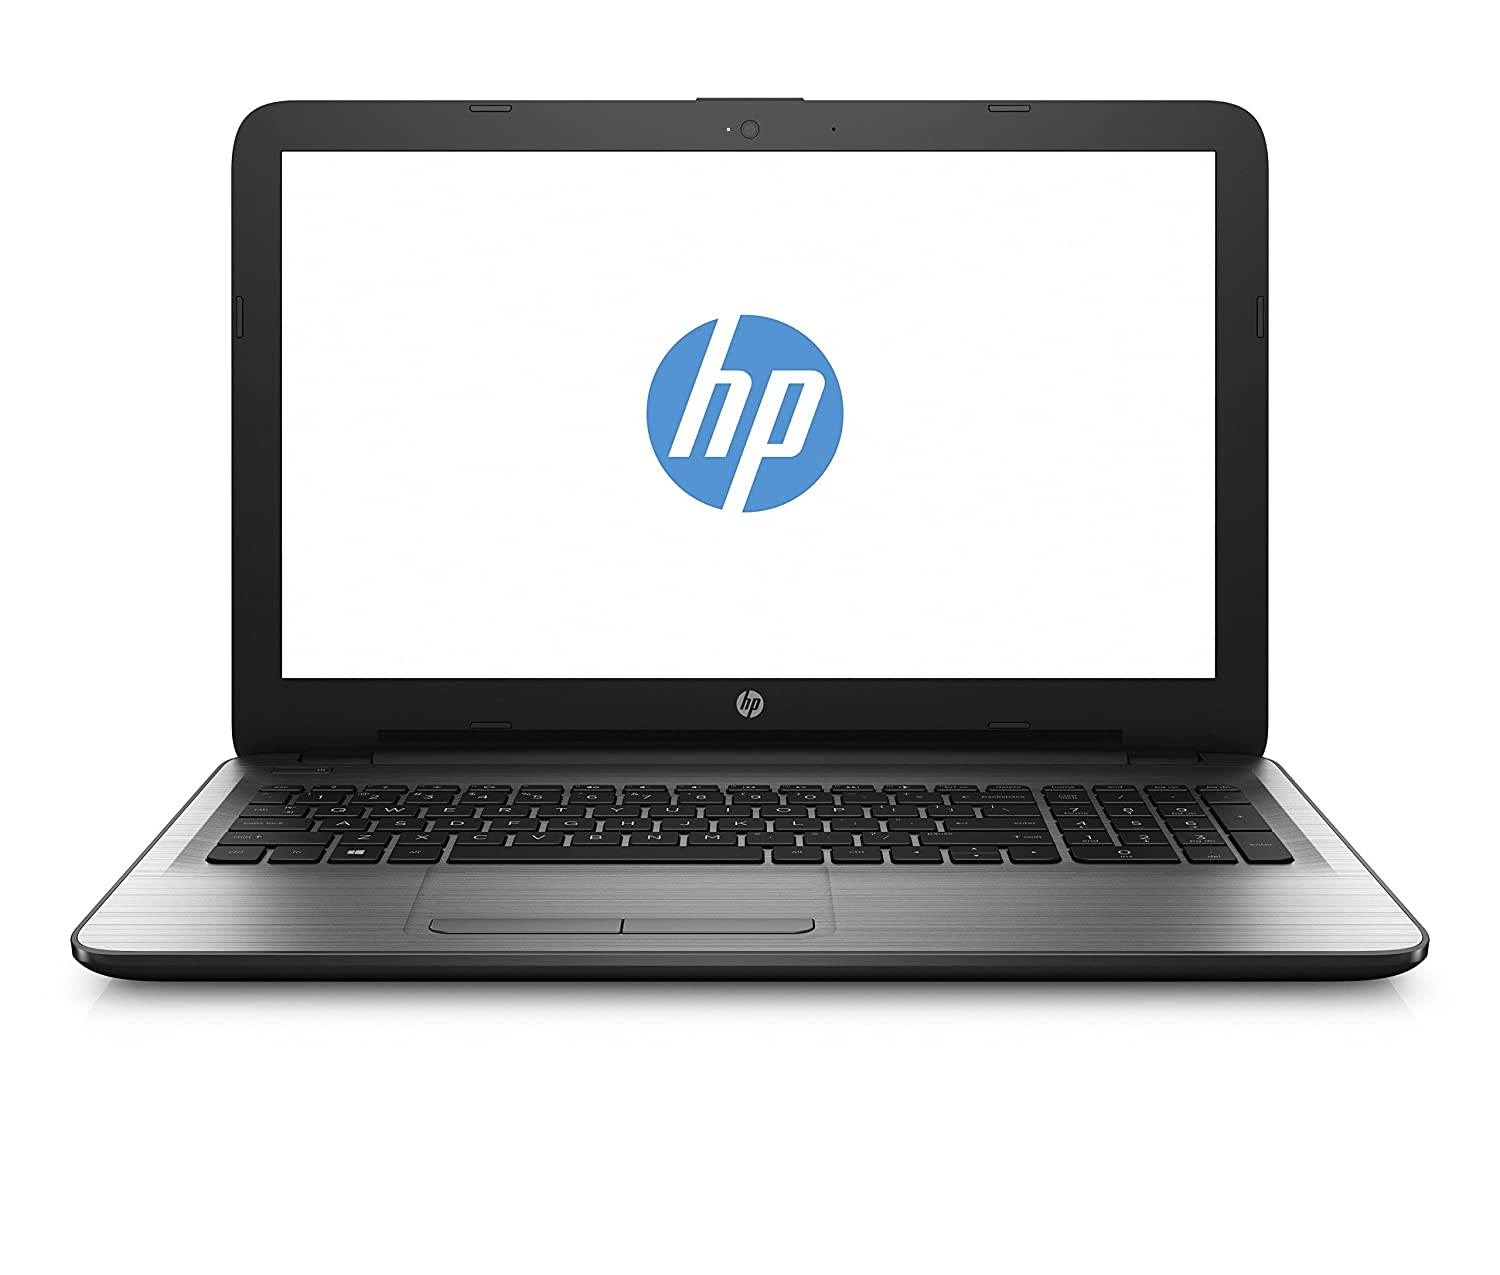 HP 15-be016TU 15.6-inch Laptop (6th Gen Core i3-6006U/4GB/1TB/FreeDOS 2.0/Integrated Graphics), Turbo Silver